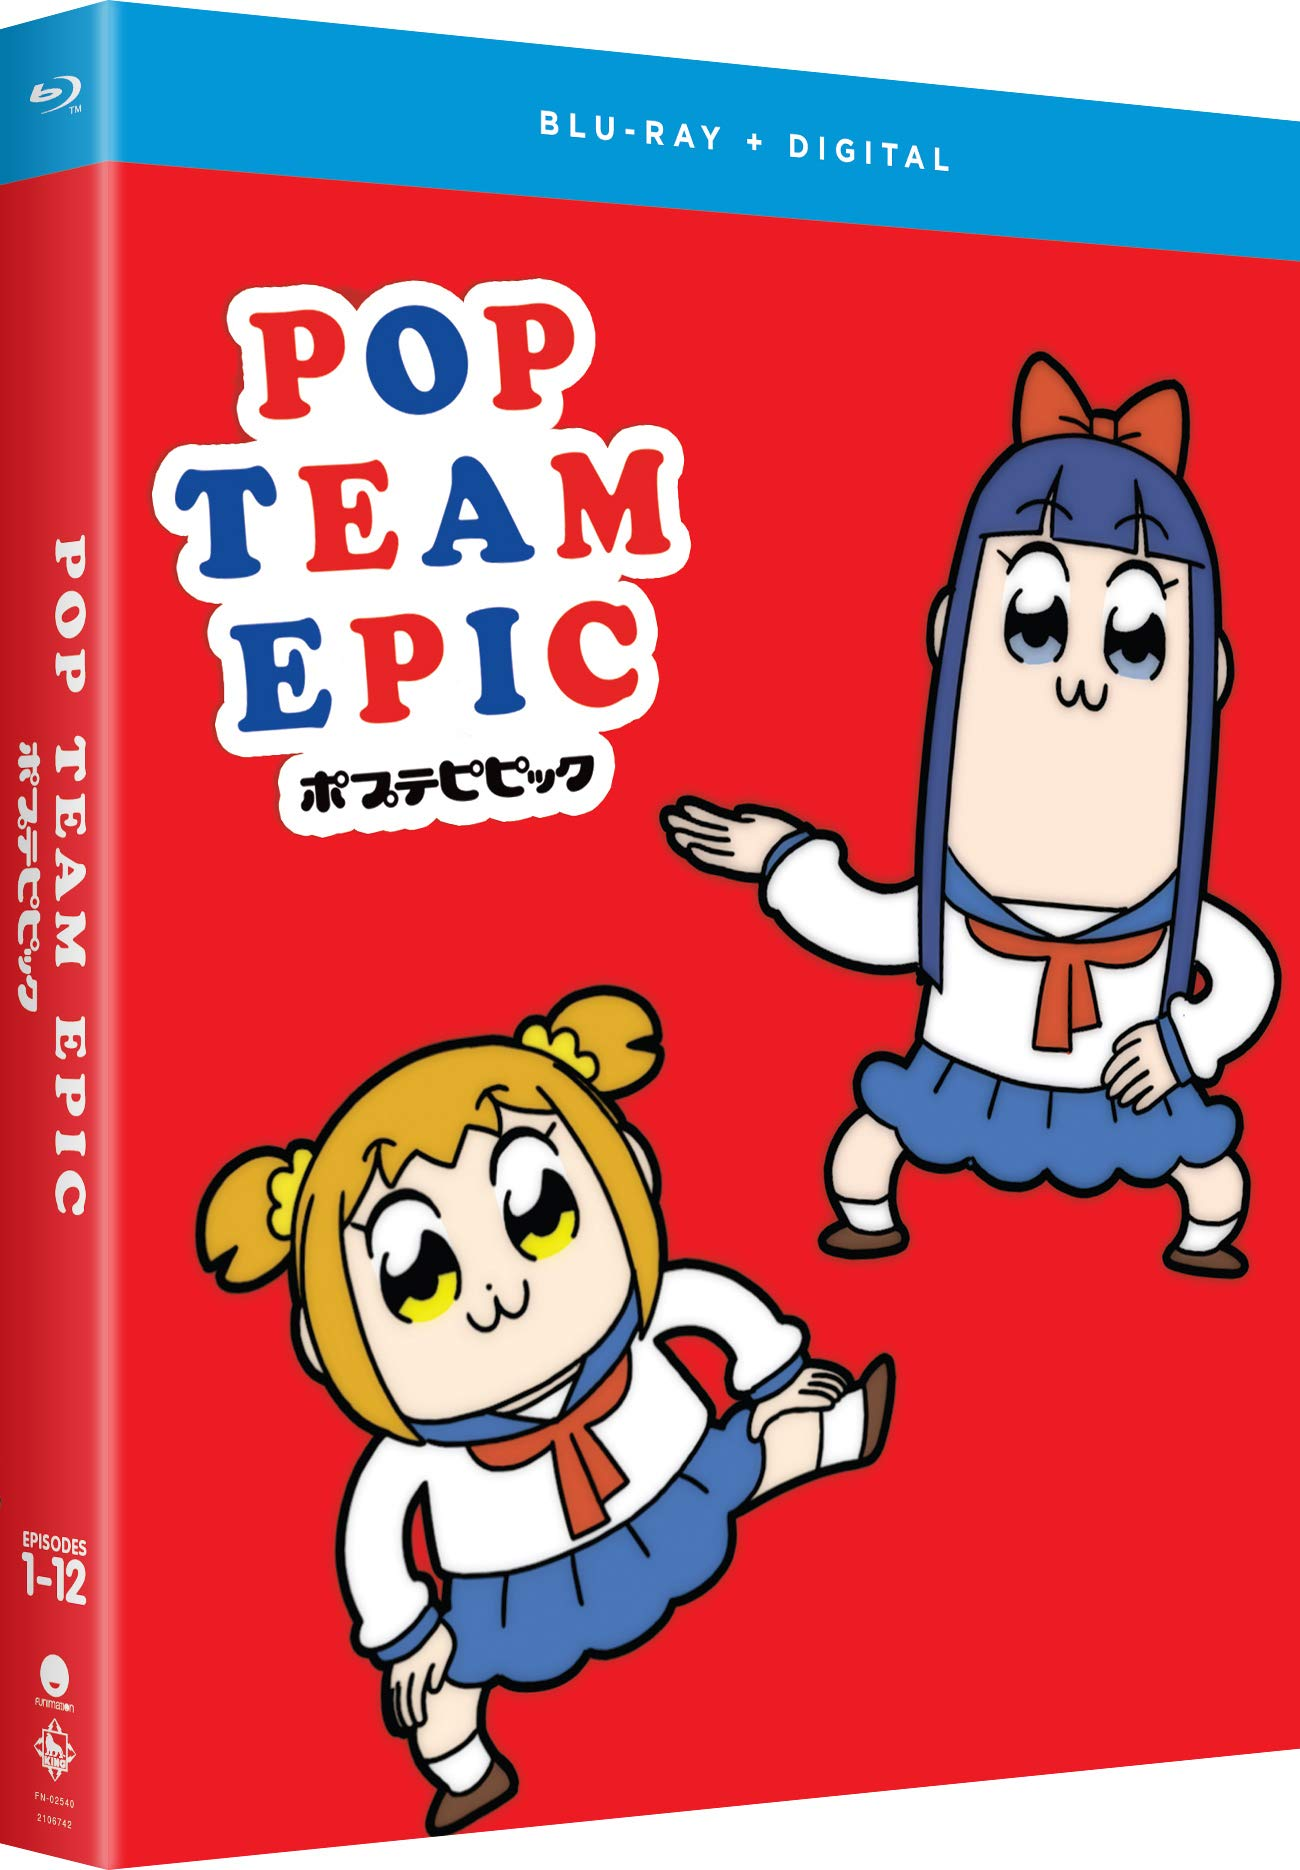 Blu-ray : Pop Team Epic: Season One (Subtitled, Digital Copy, 2 Pack)